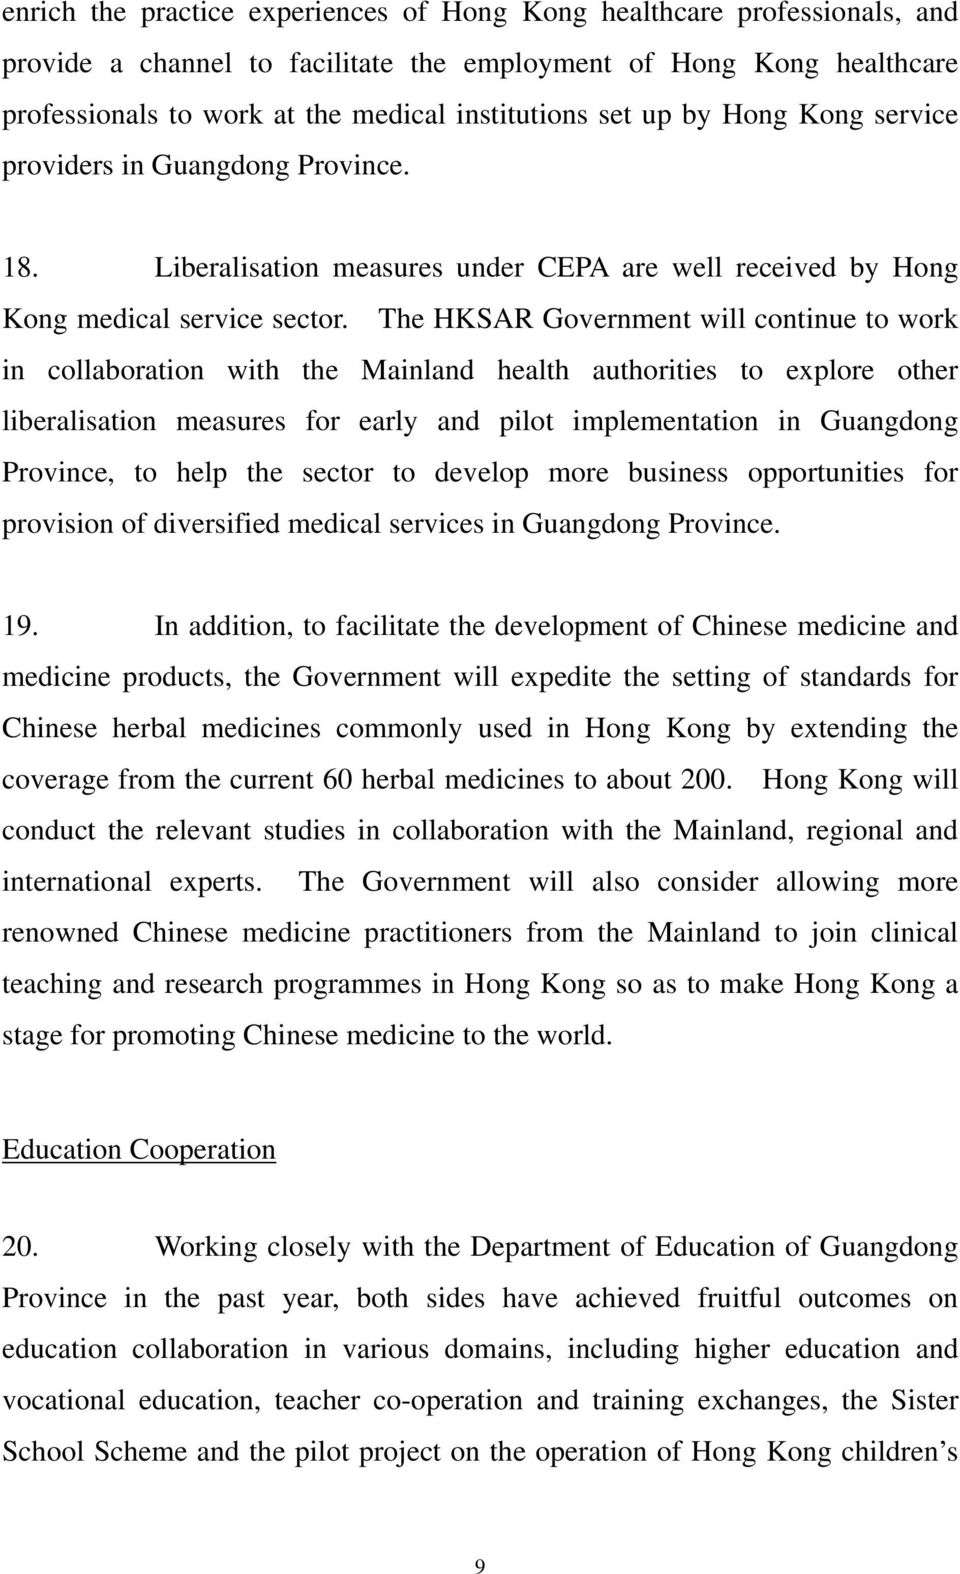 The HKSAR Government will continue to work in collaboration with the Mainland health authorities to explore other liberalisation measures for early and pilot implementation in Guangdong Province, to